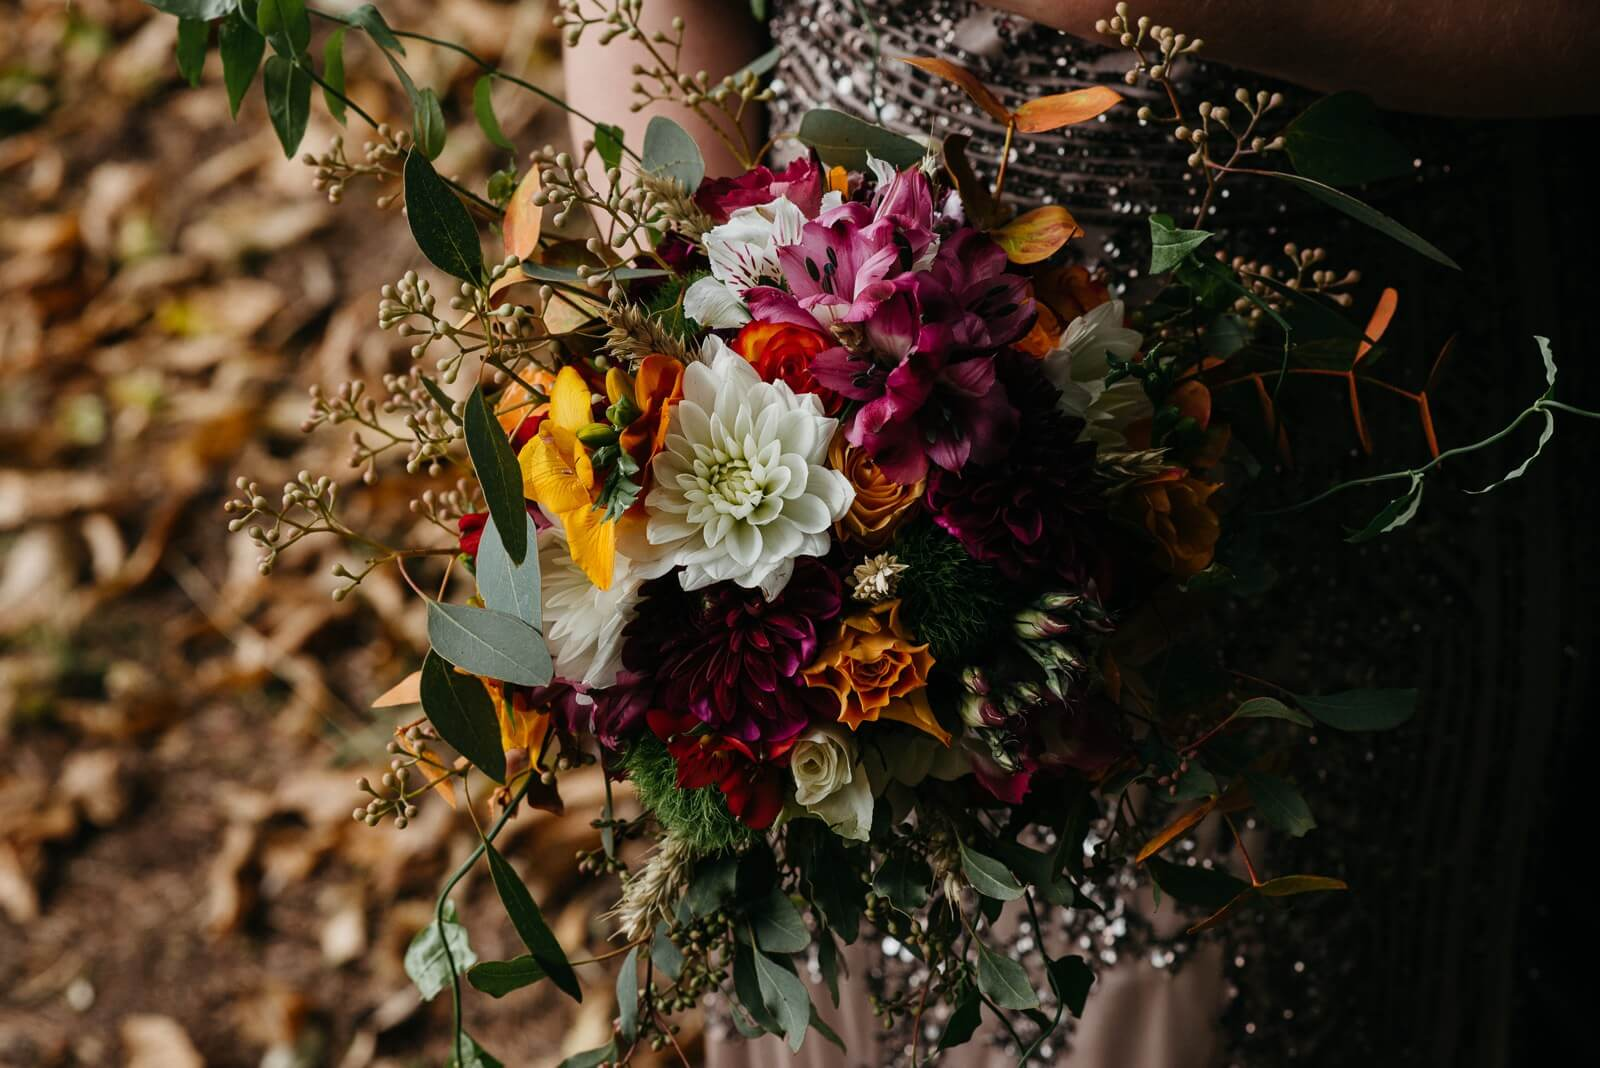 Autumn rustic bouquet of white dahlias, orange and red roses, hot pink dahlias, freesia, foliage and lilies for rustic alternative barn wedding near cardiff